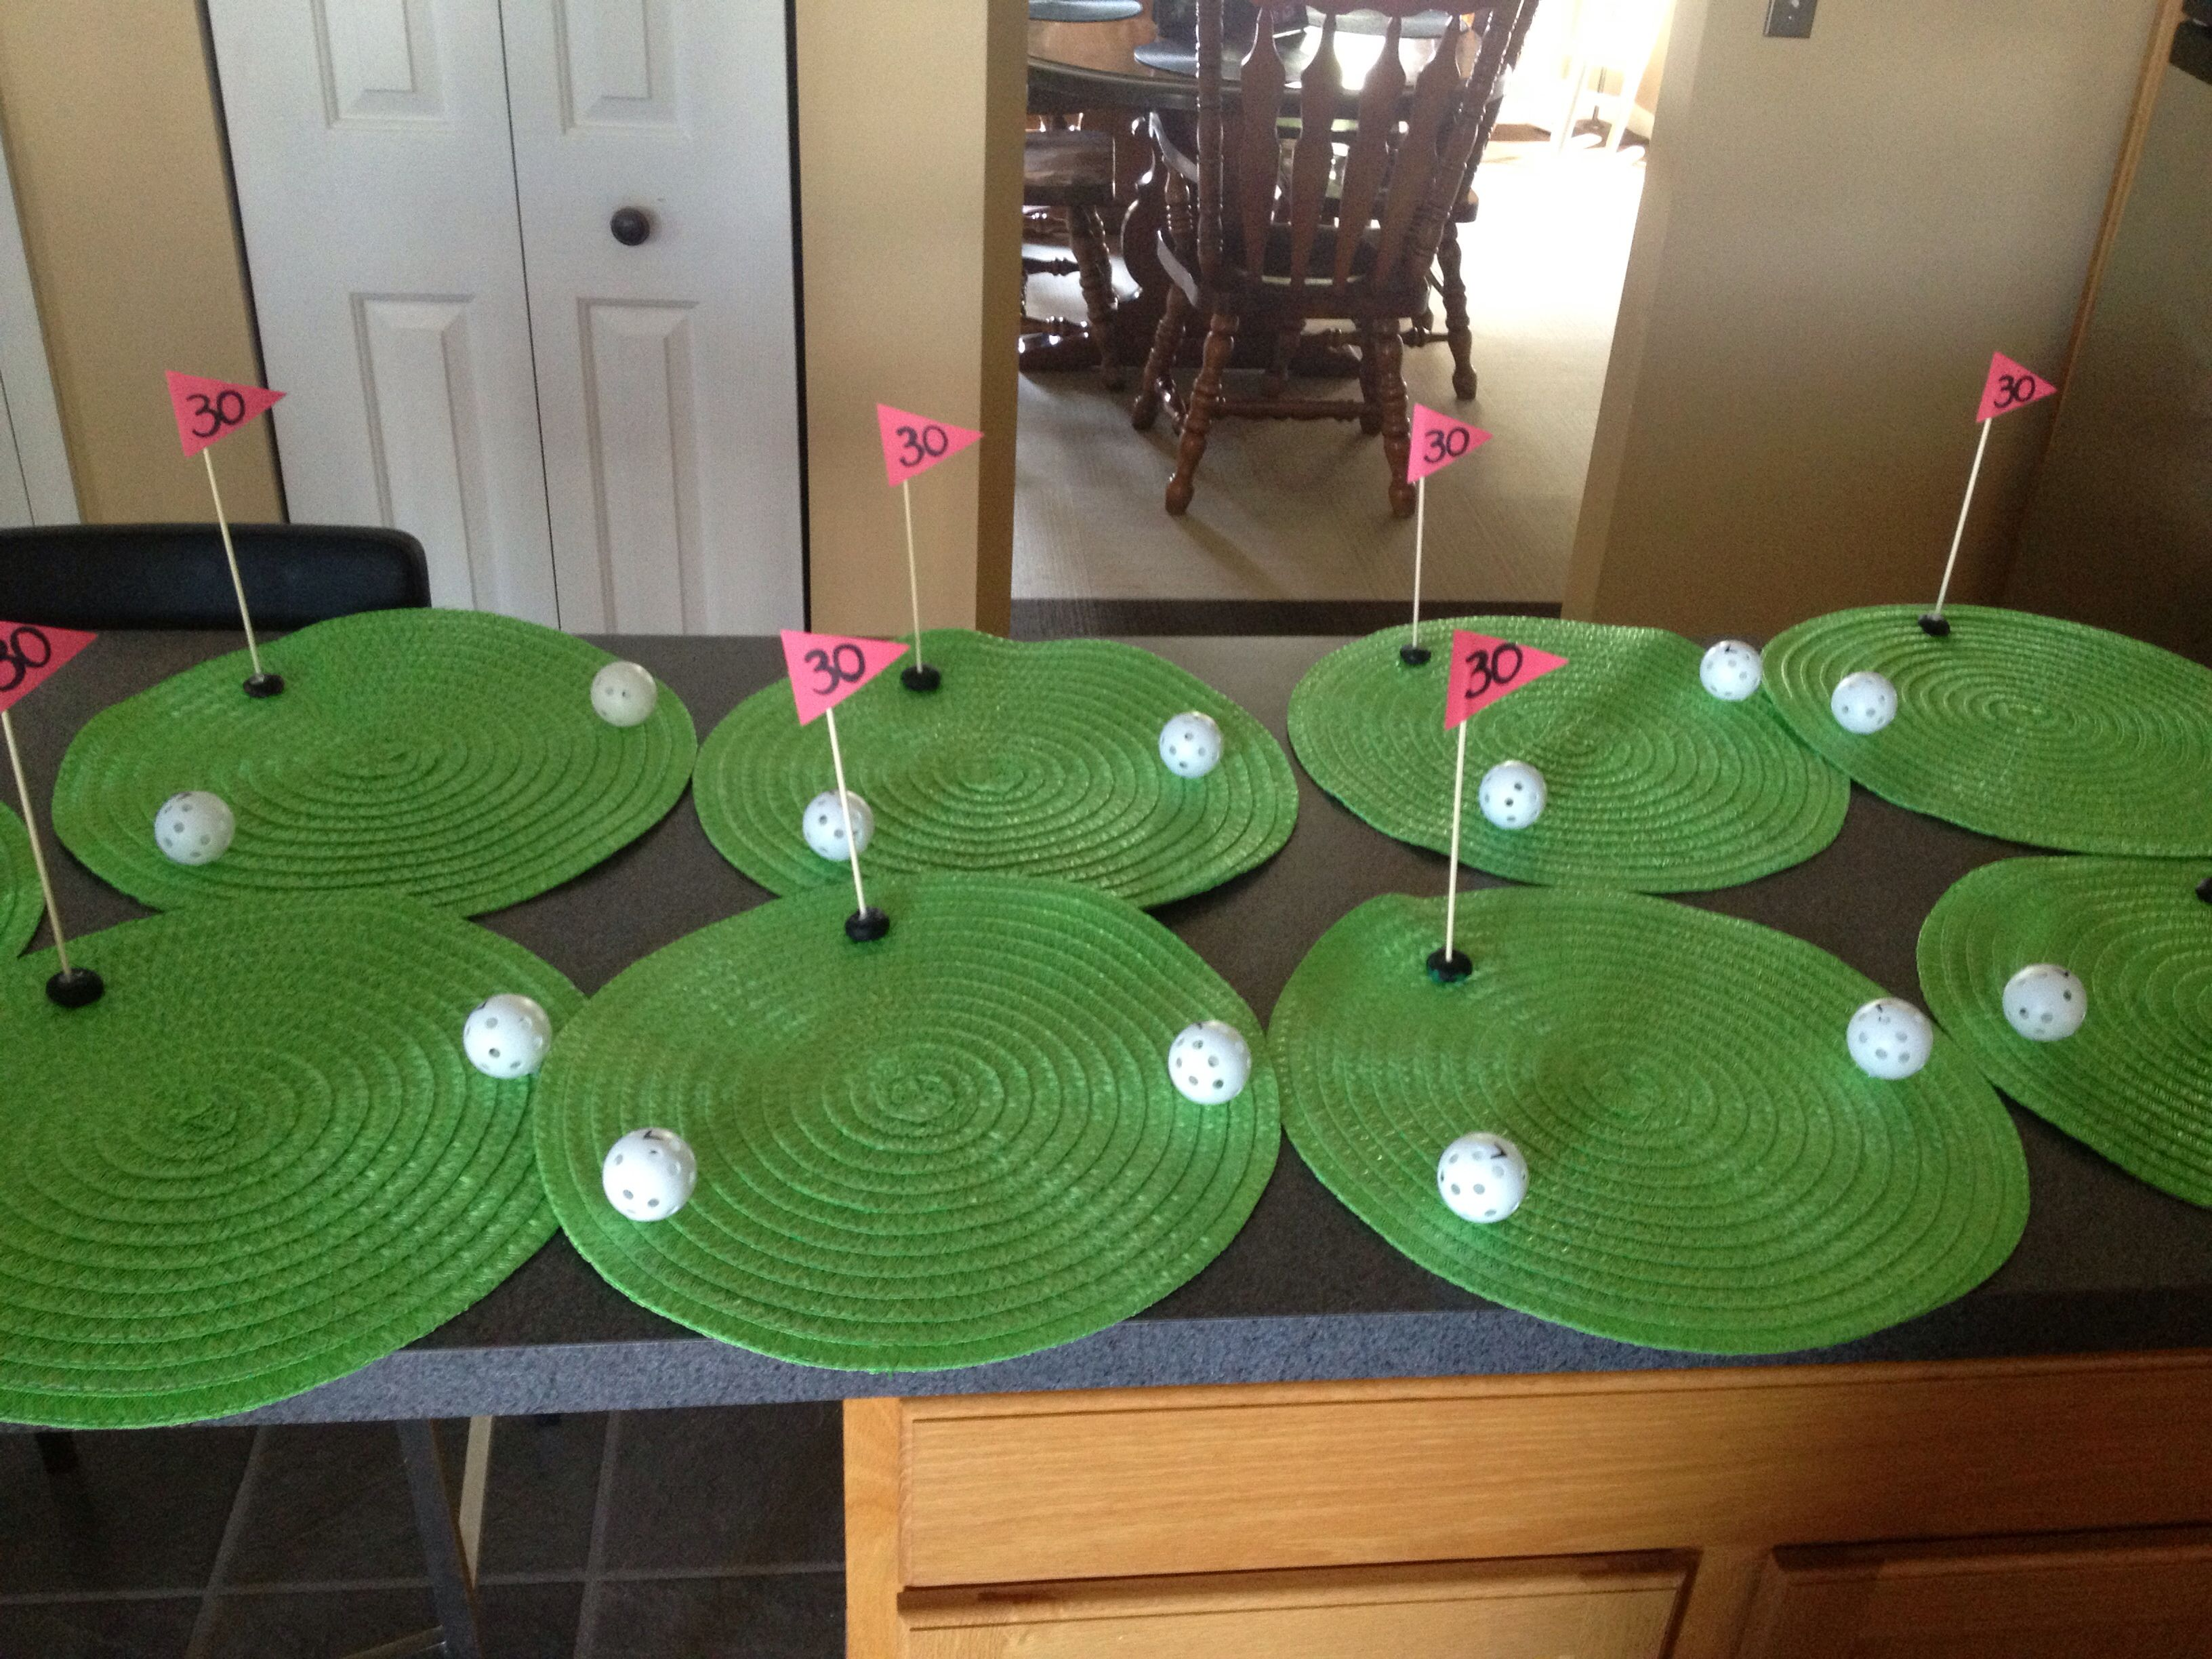 Golf Themed Birthday Party These Center Pieces Were Made From Dollar Store Mats Plastic Gold Balls Hot Glued On And Wooden Skewers For The Flags